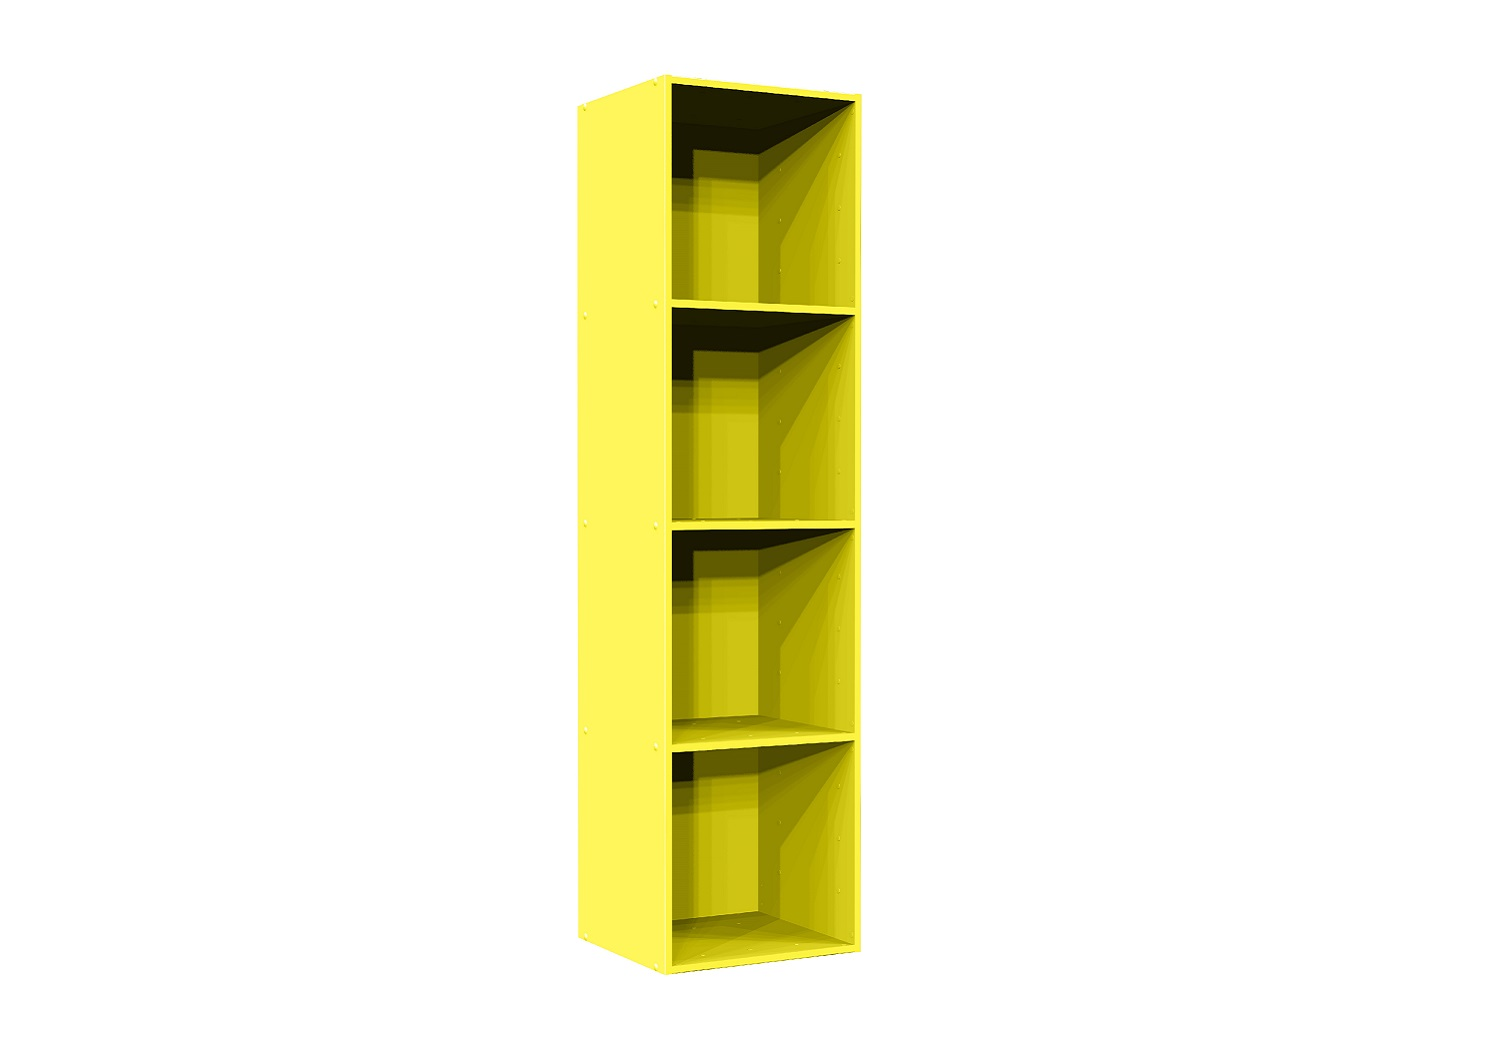 Bilrich Storage Furniture - Multi Kaz 4x1 Cube Green